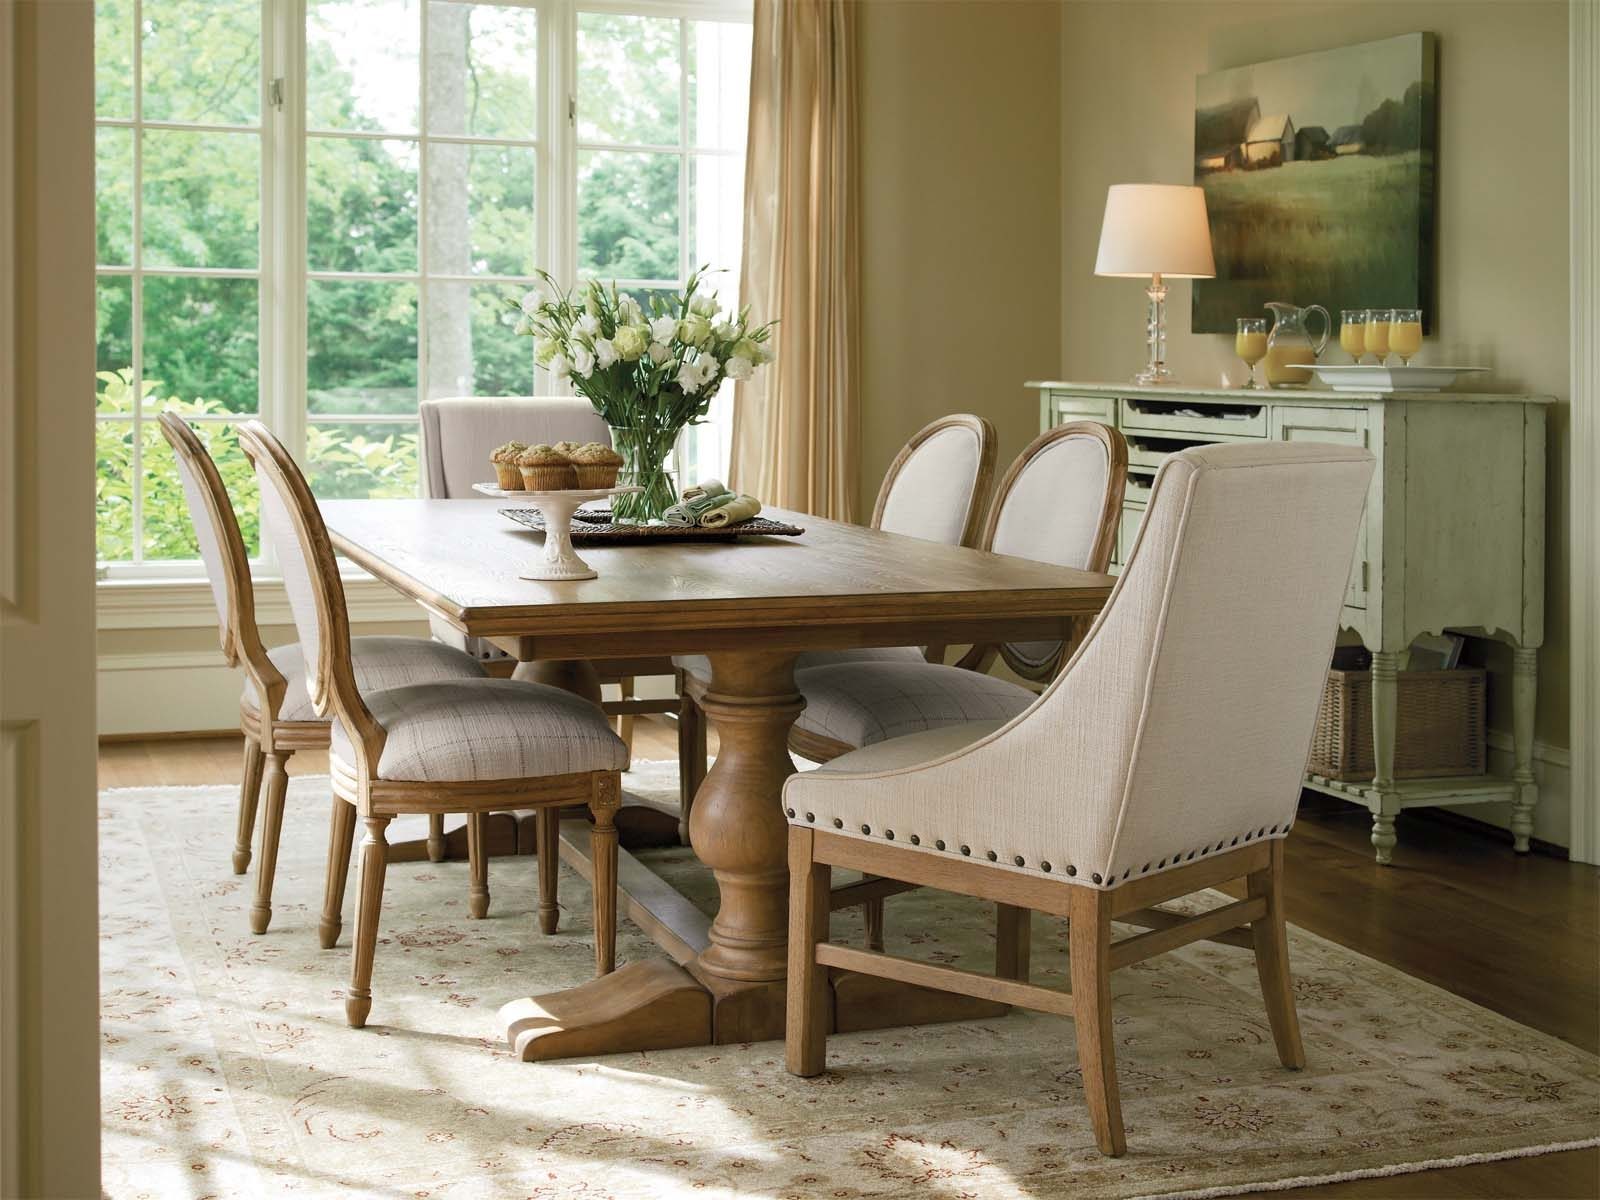 French Style Table And Chairs Home Trends Ideas Regarding Grey Dining Chairs With Farmhouse Dining Table Grey Dining Chairs With Farmhouse Dining Table - Modern Dining Chairs